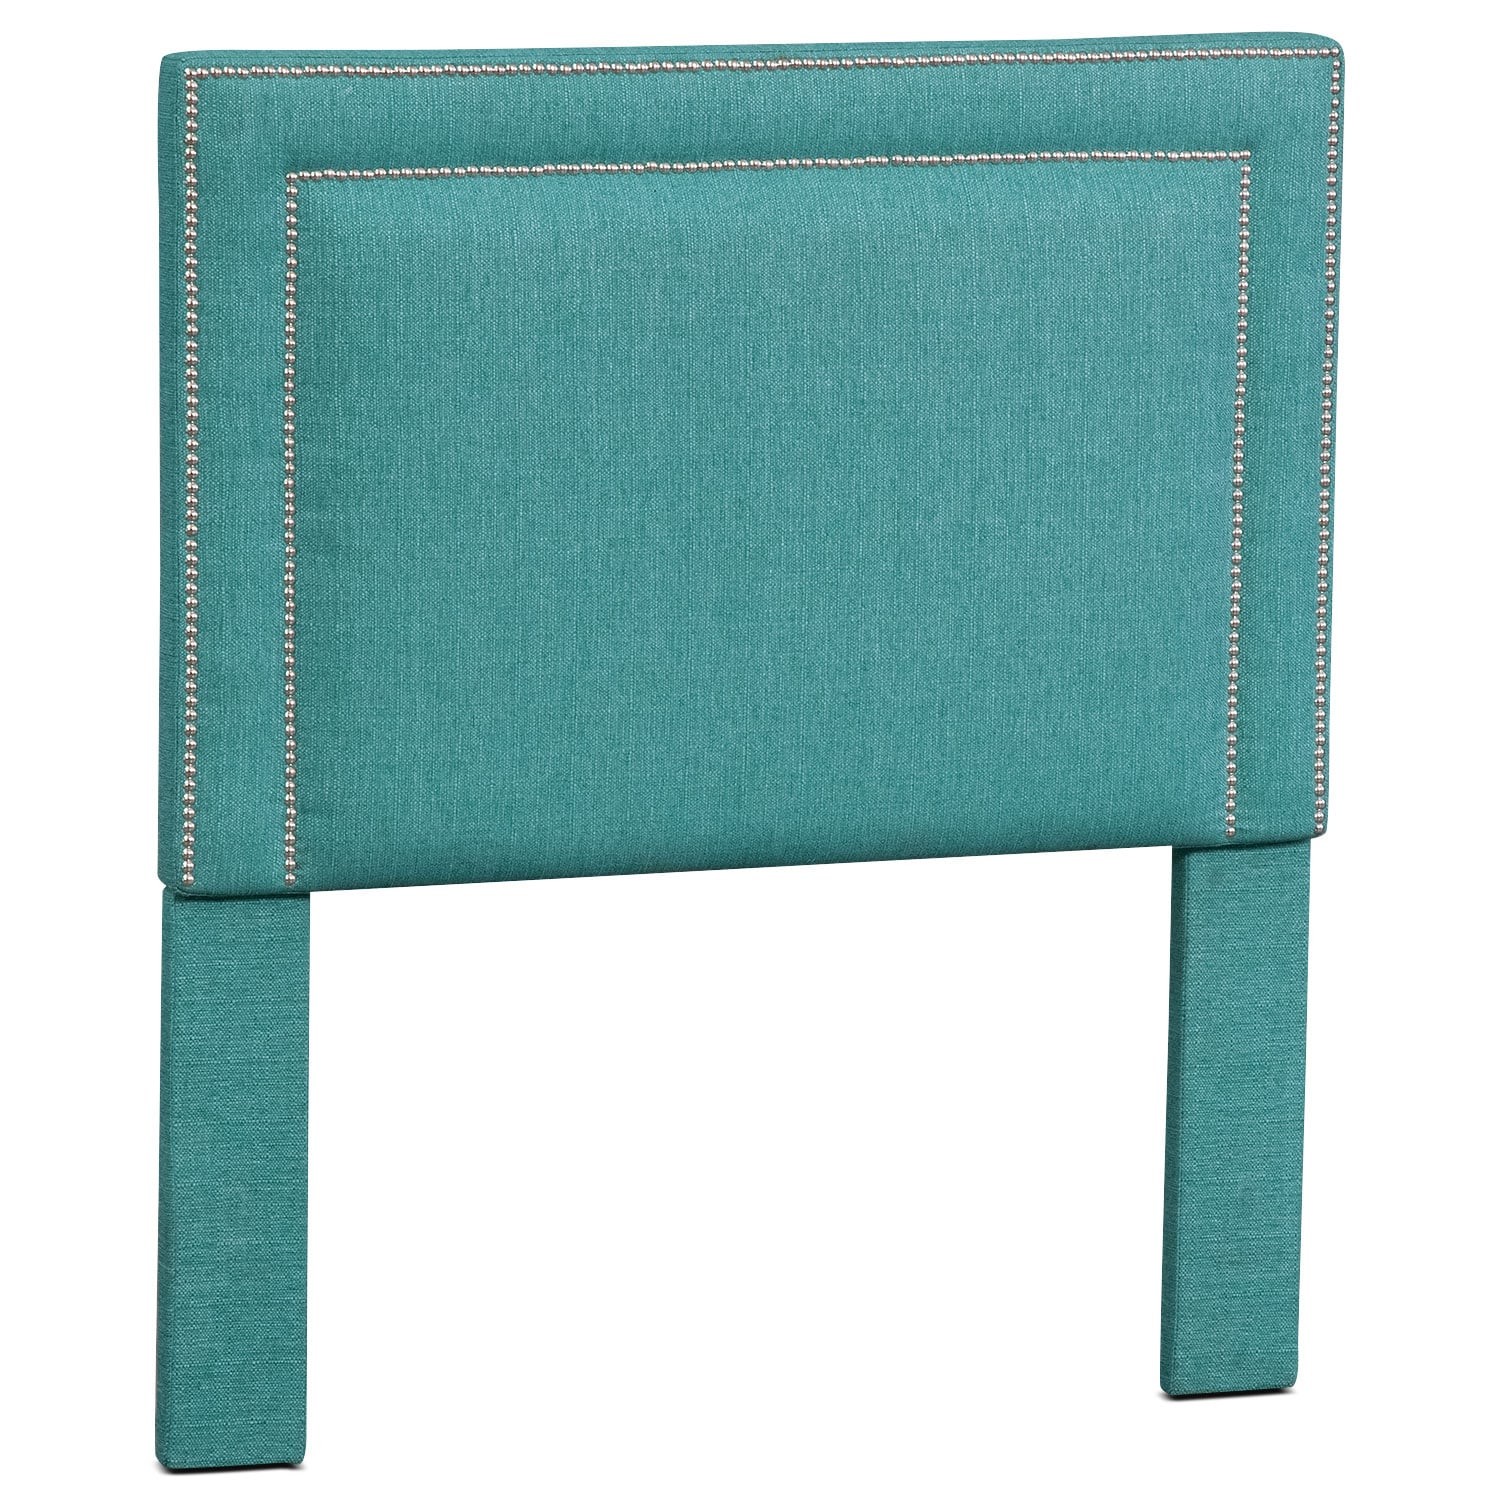 Bedroom Furniture - Natalie Twin Upholstered Headboard - Teal